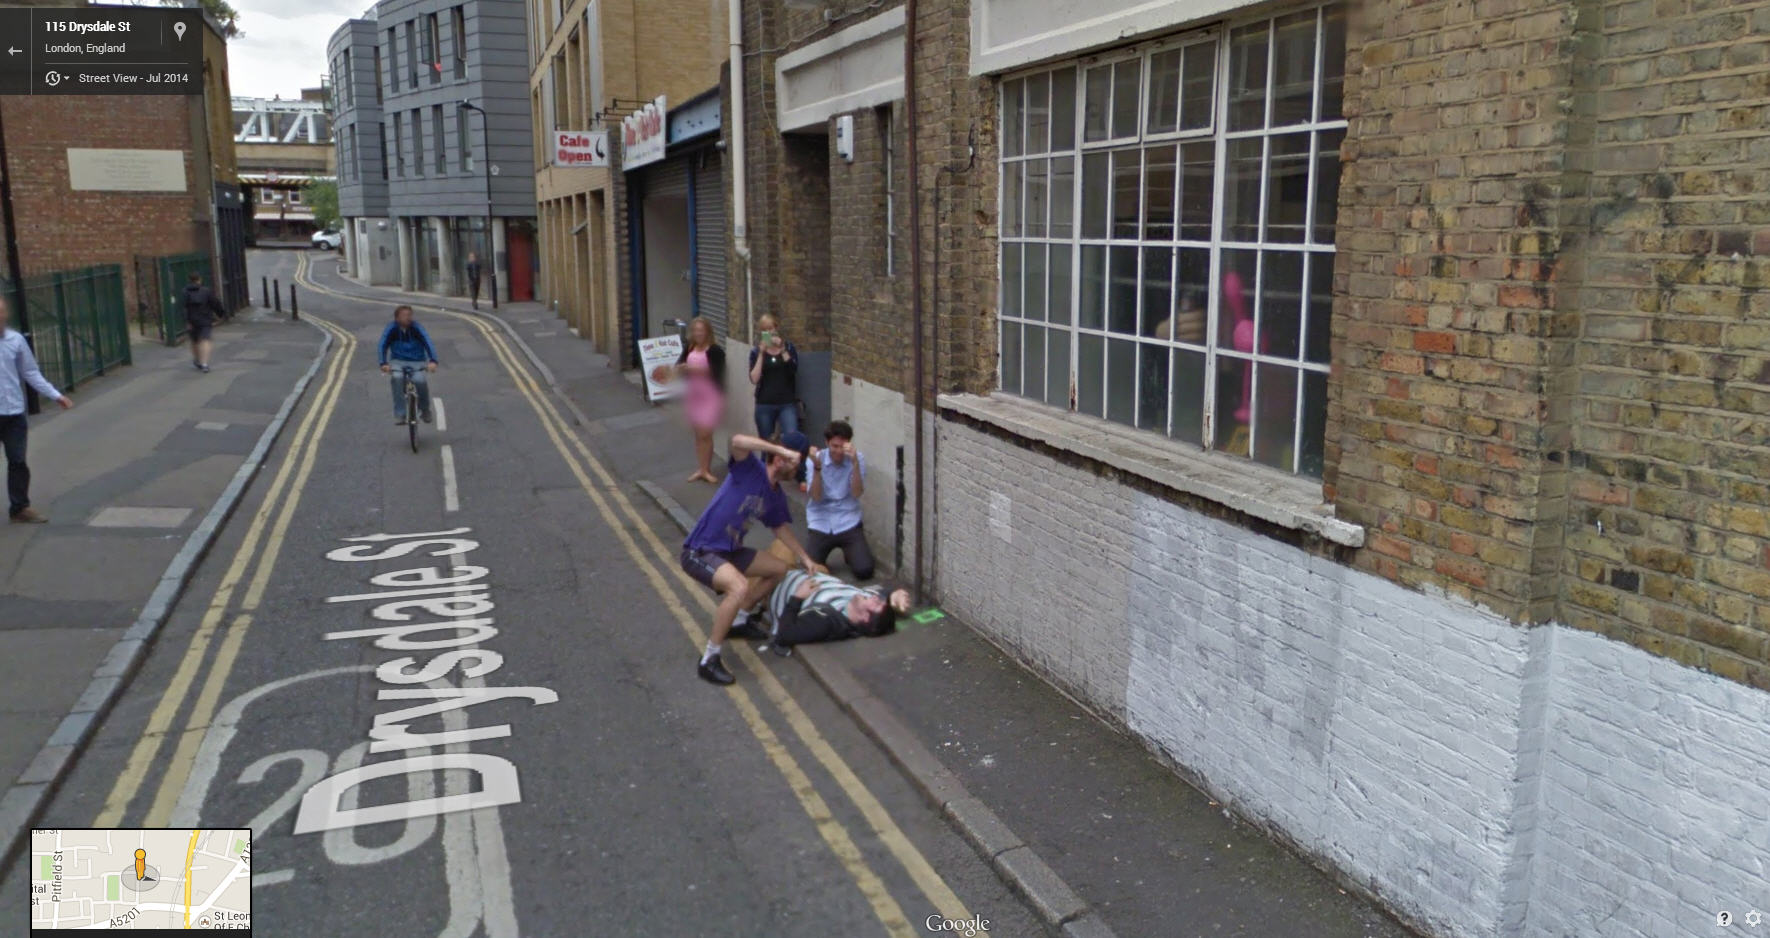 Google Street View captures a mugging on a UK street